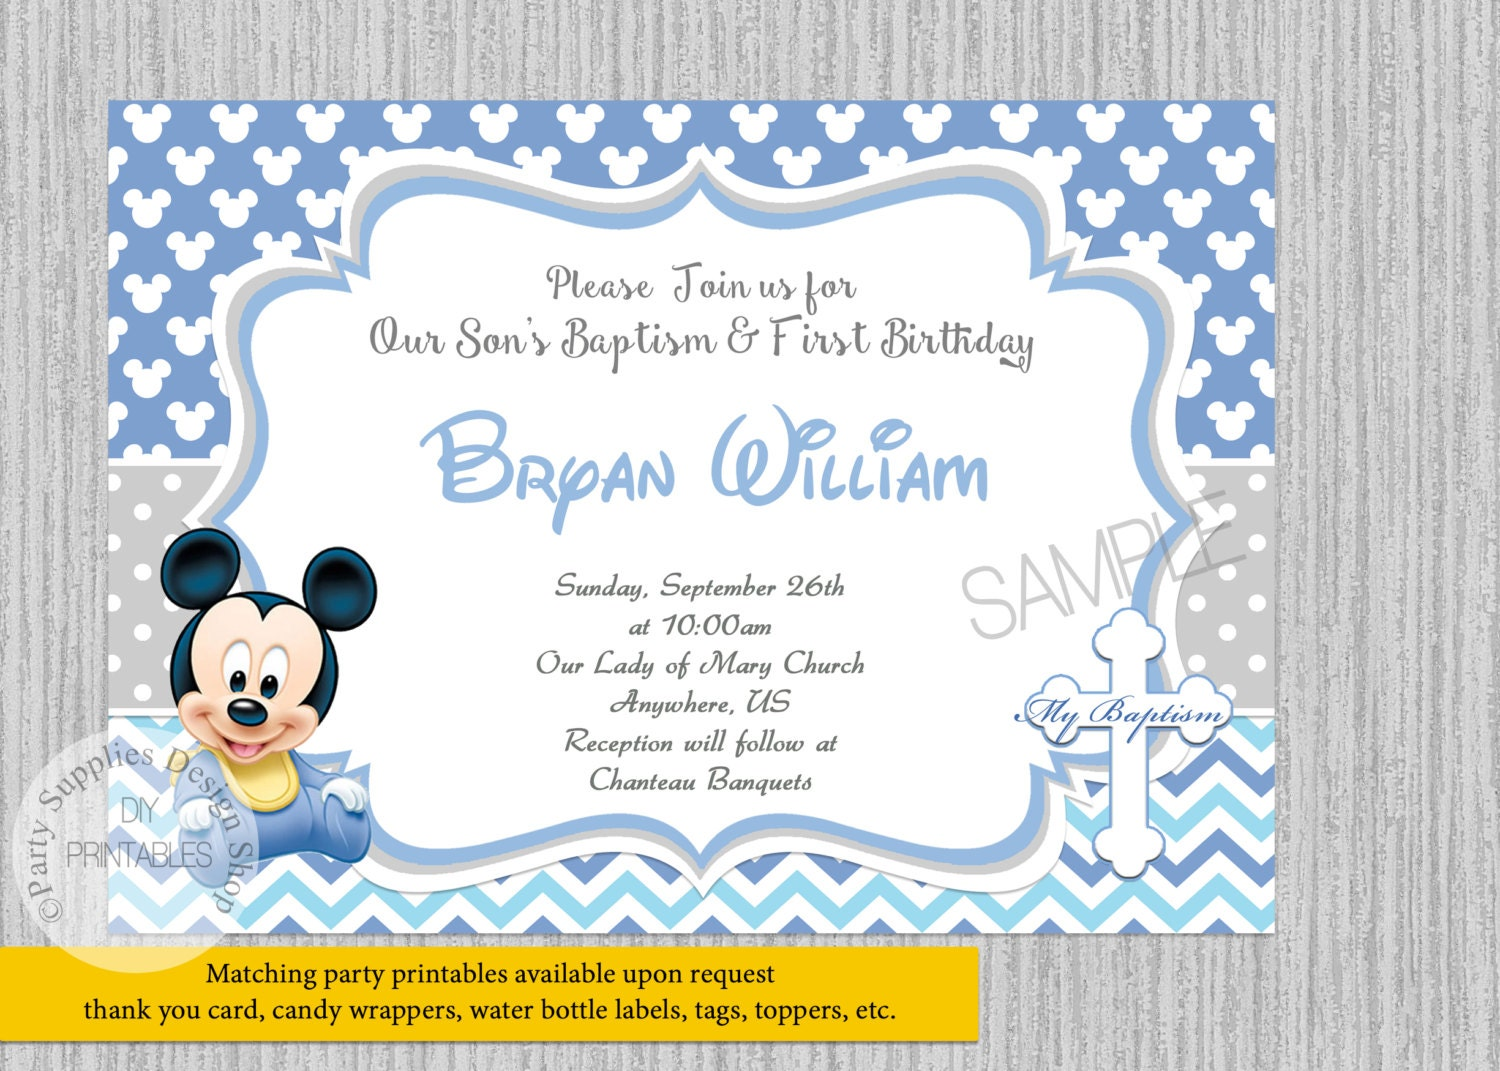 Baby mickey mouse invitations birthday etamemibawa baby mickey mouse invitations birthday filmwisefo Image collections